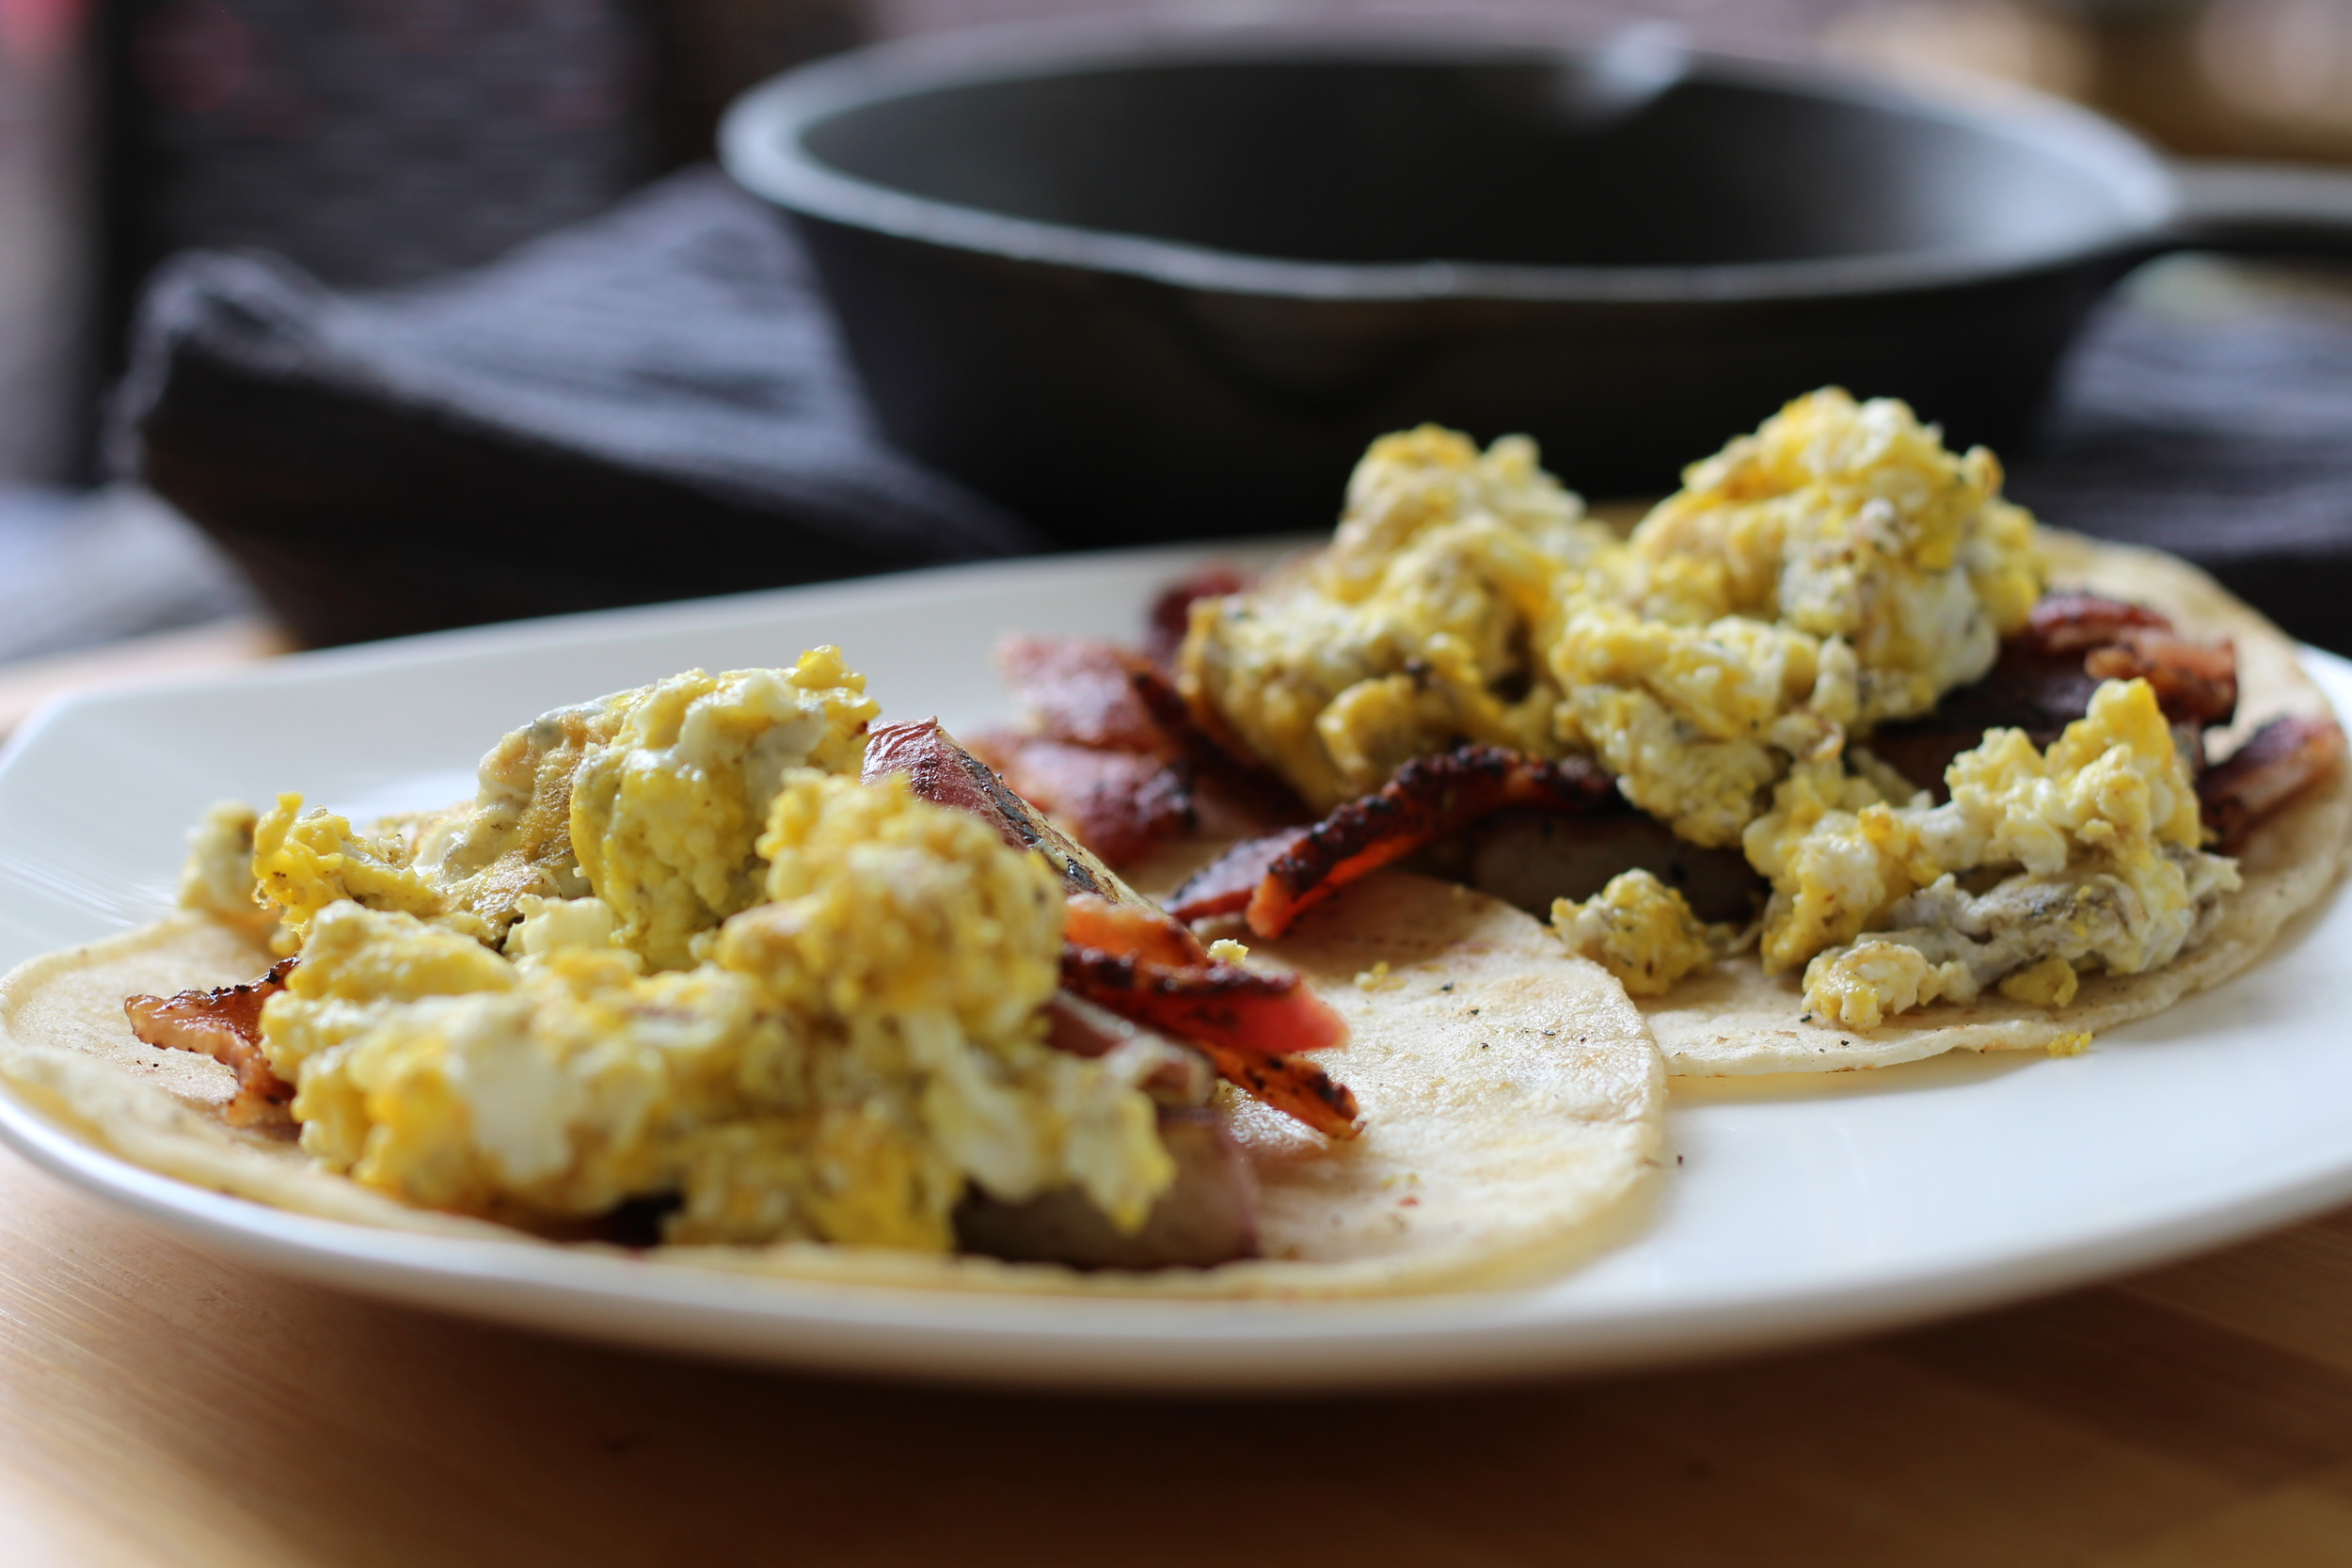 Breakfast Tacos!: Corn Tortillas, eggs and bacon!